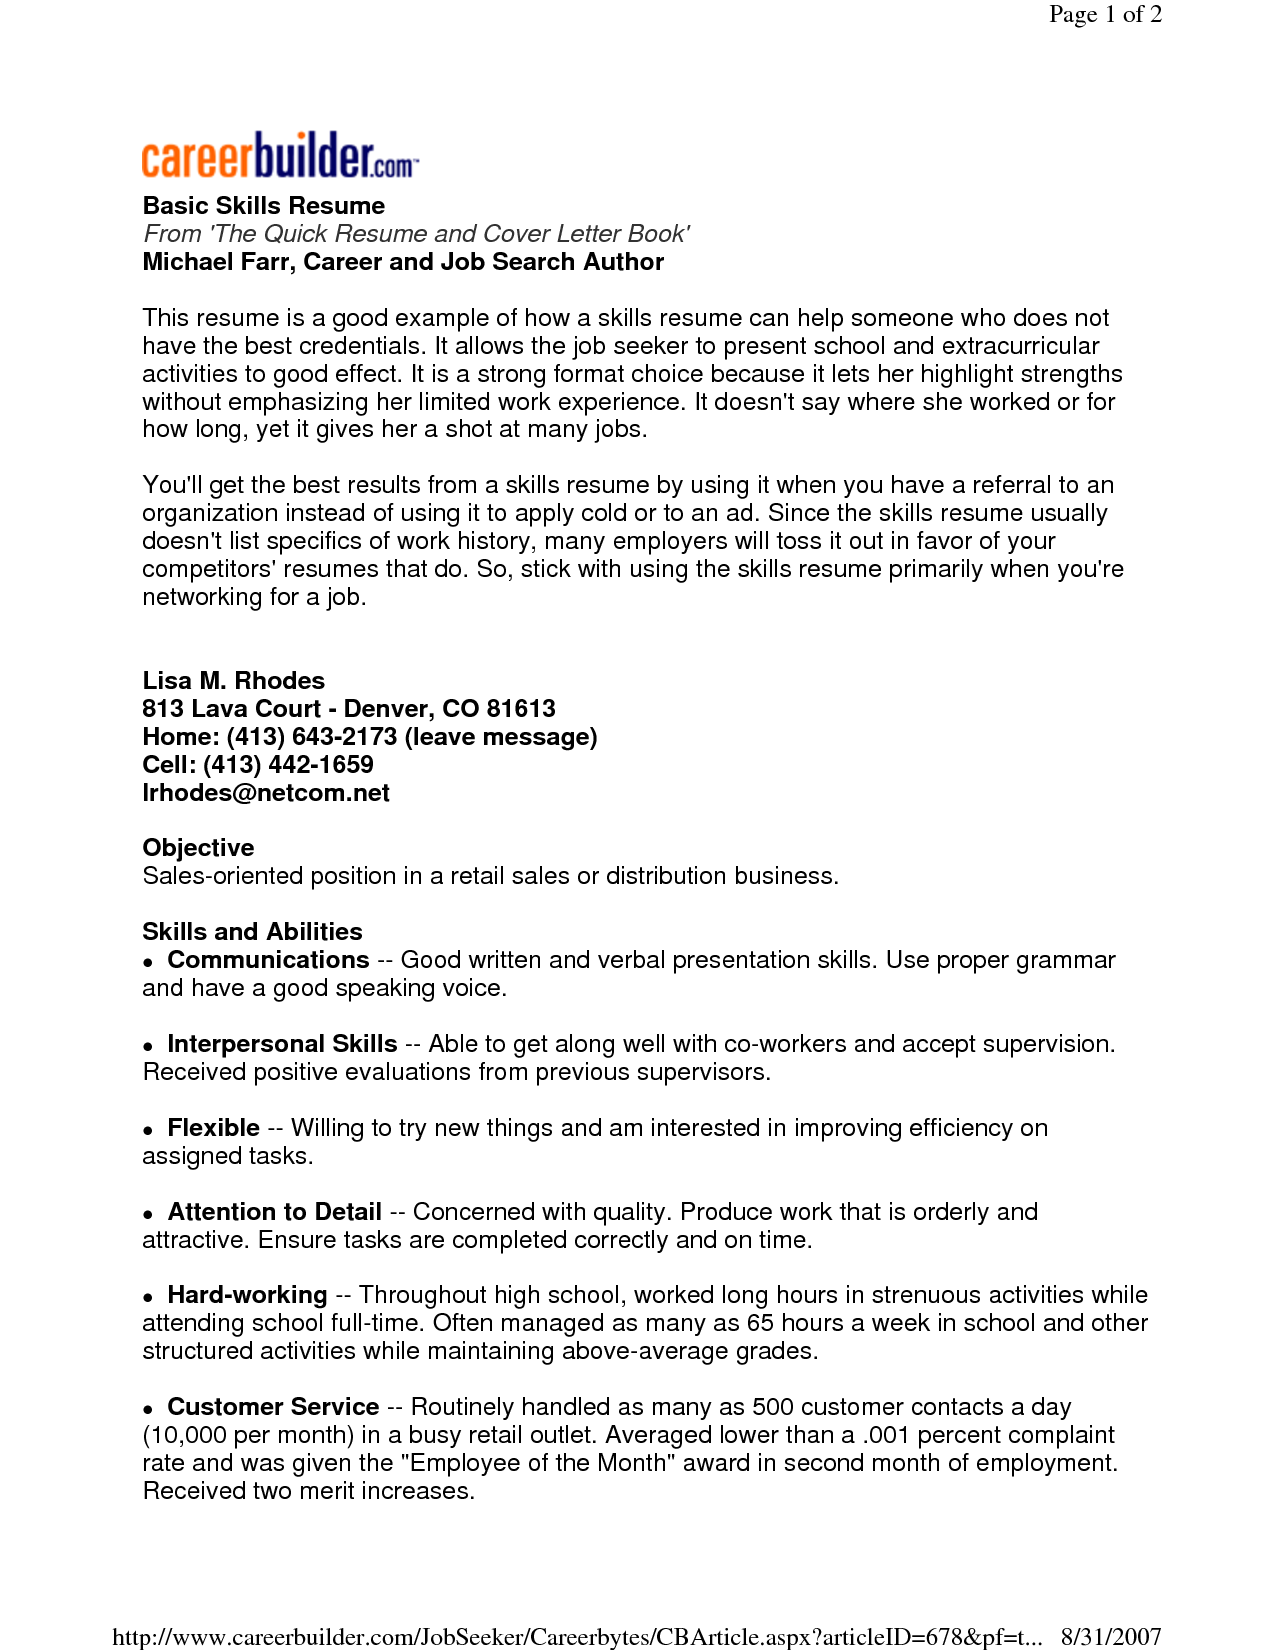 find here the sample resume that best fits your profile in order to get ahead the competition